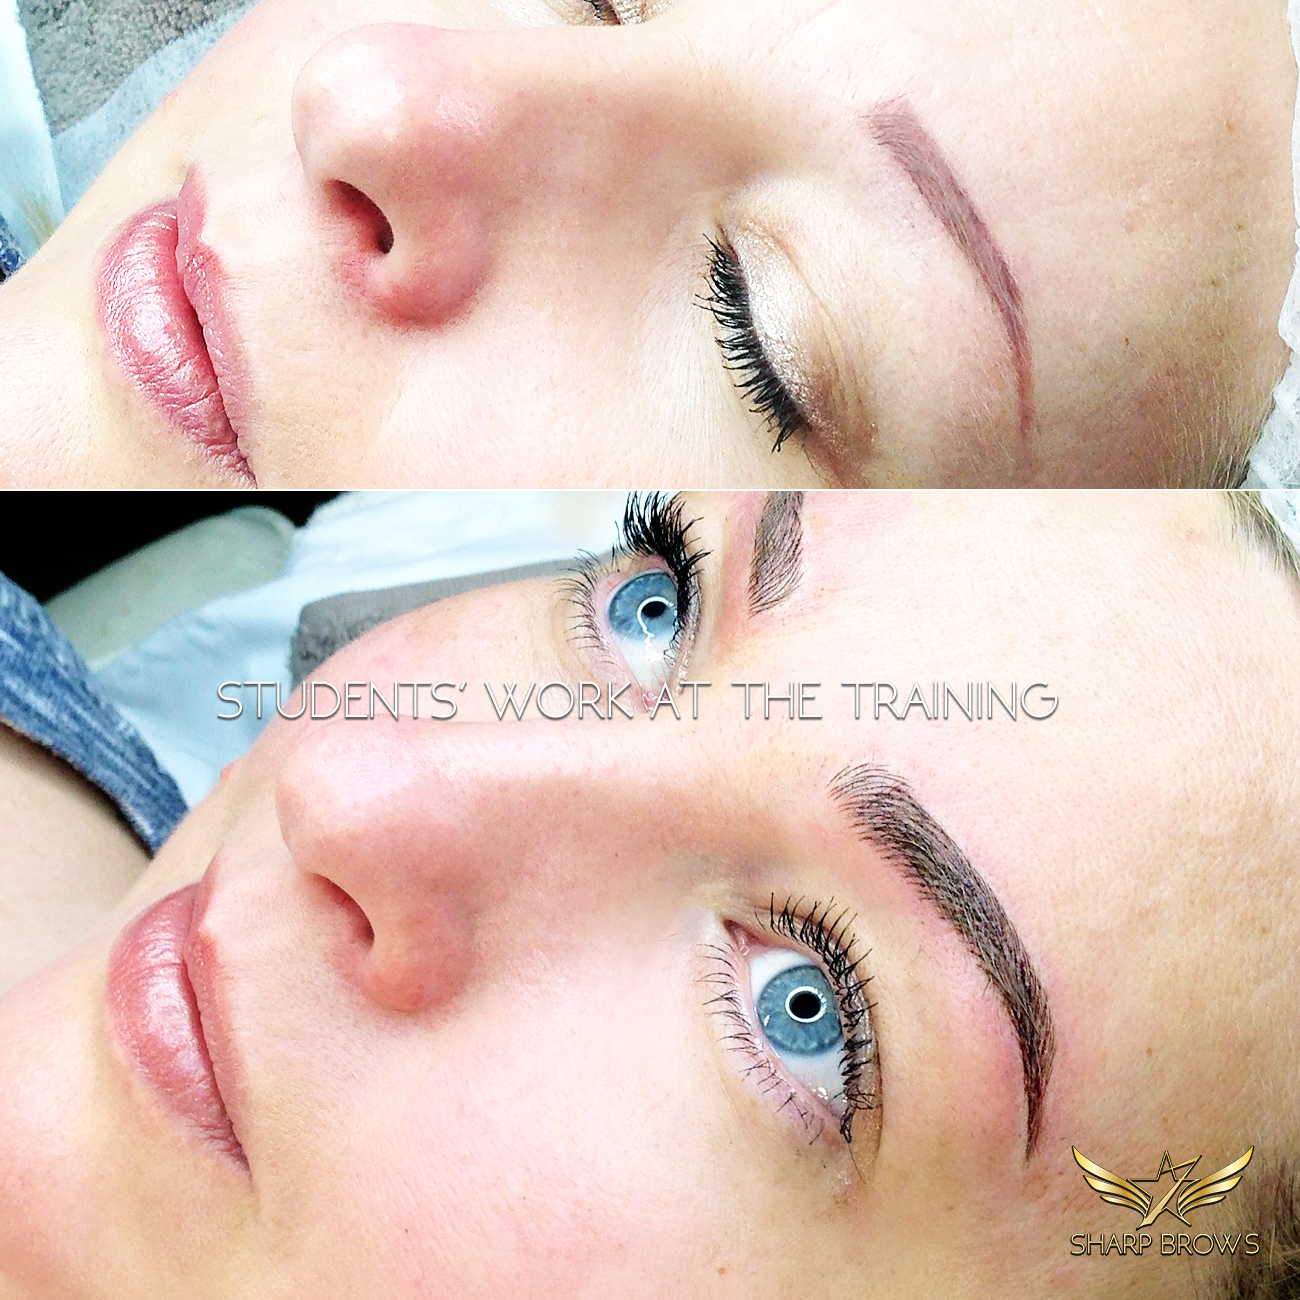 SharpBrows Light microblading. Students' work at the training. A challenging pigmentation fixed with Light microblading by a student at SharpBrows Light microblading class.